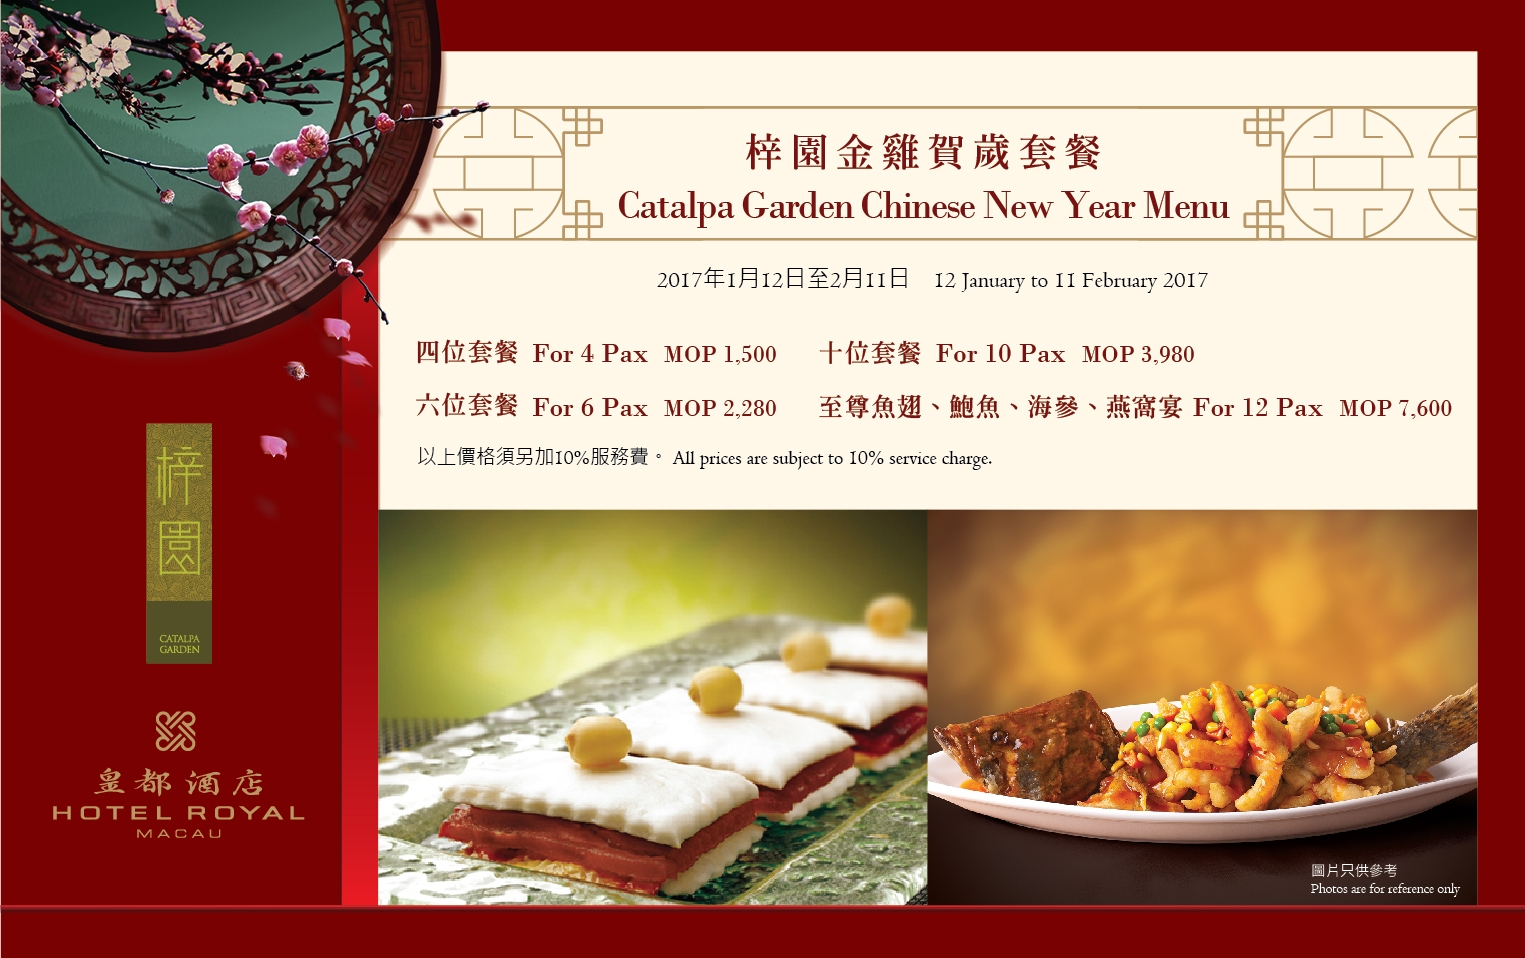 Catalpa Garden proudly presents 4 Chinese New Year set menus featuring a  refined selection of Shanghainese favourites to delight every palate. 2f81ecb1a